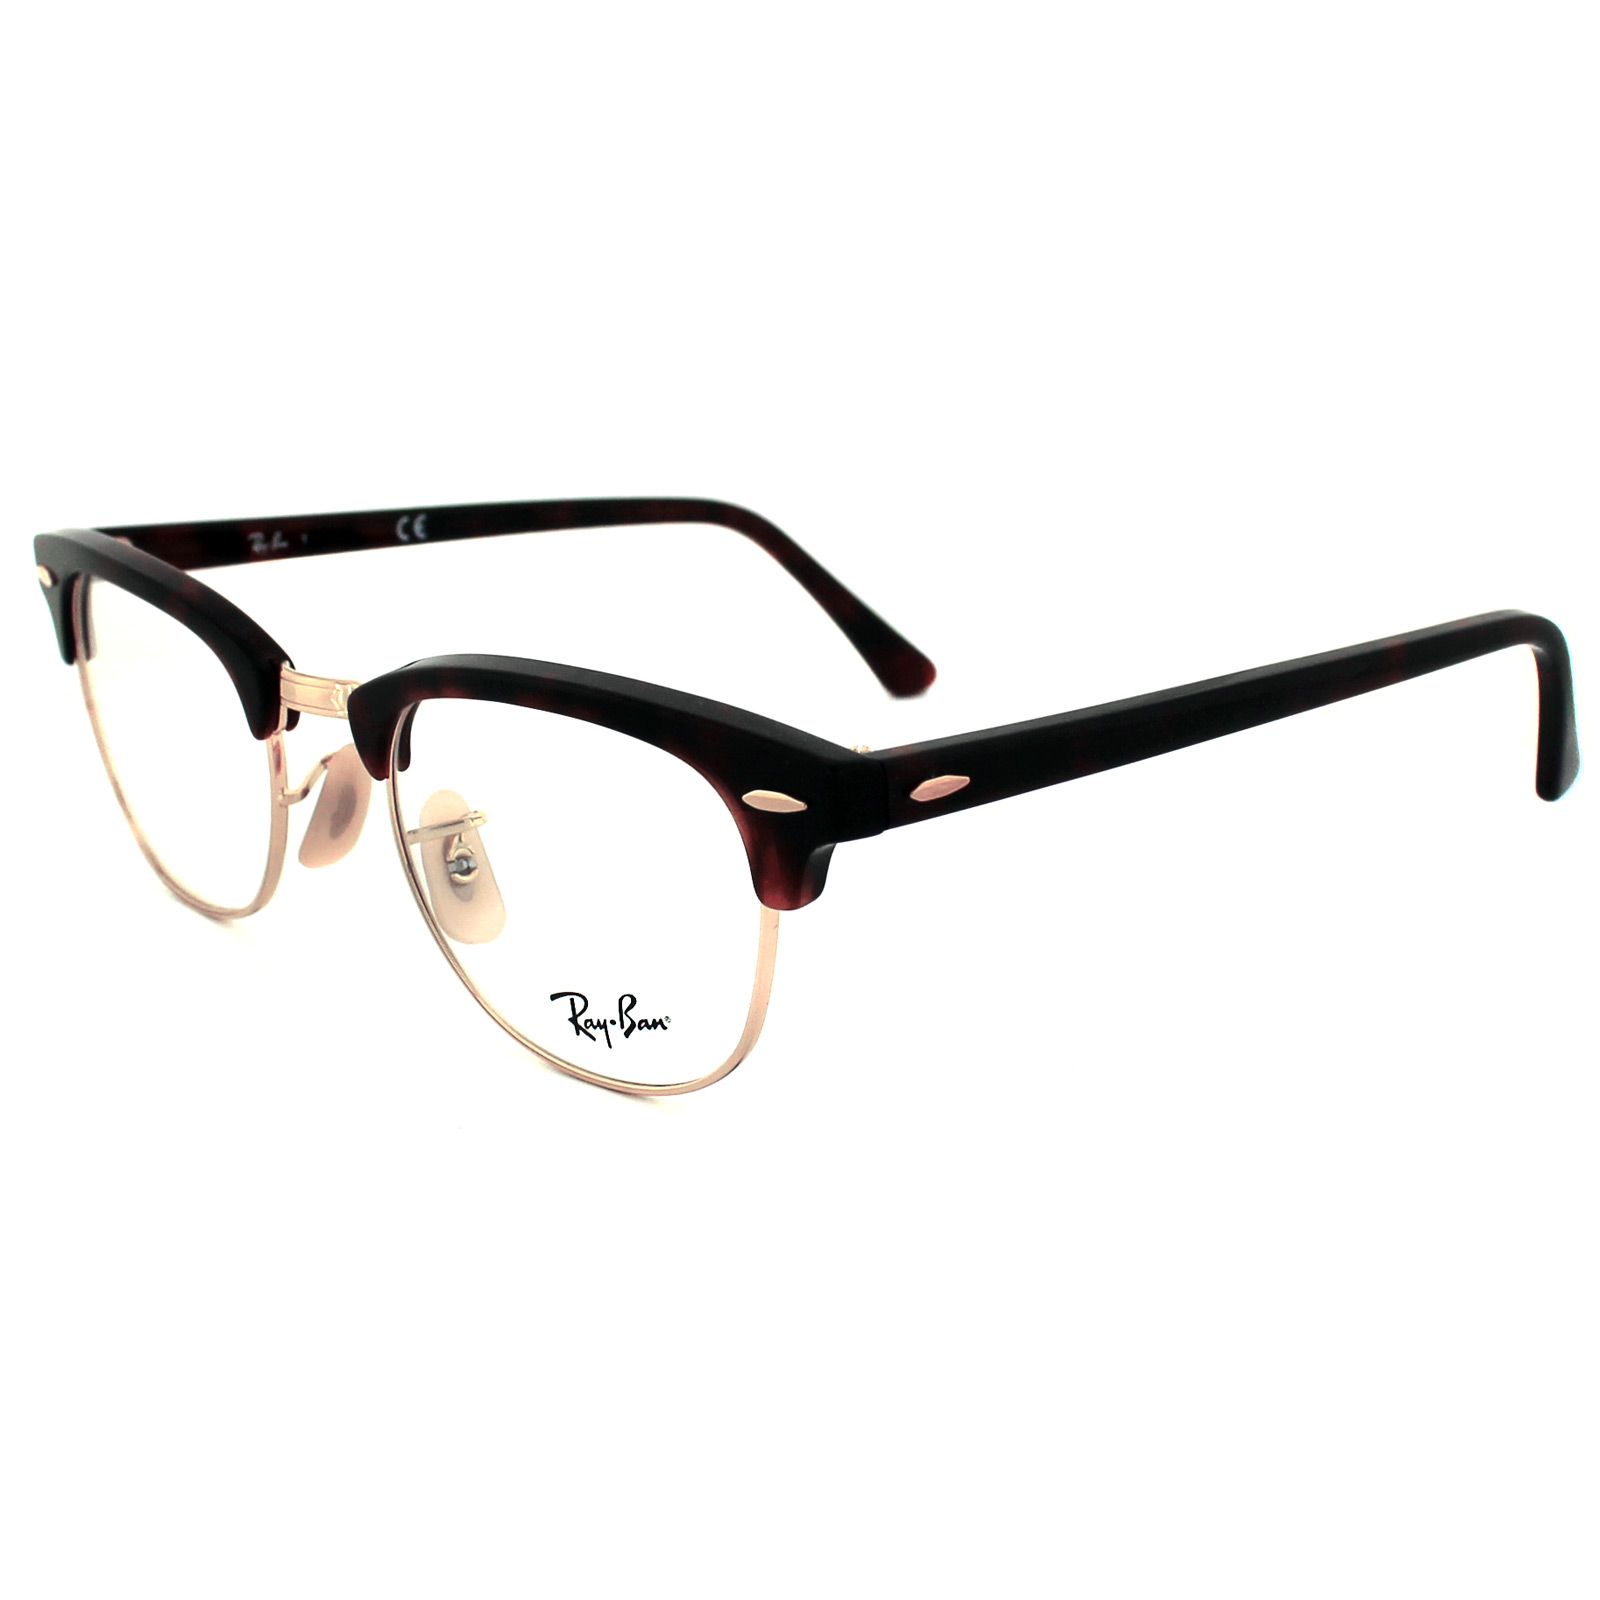 e90a5f9e067 Sentinel Ray-Ban Glasses Frames 5154 Clubmaster 2372 Red Havana 51mm